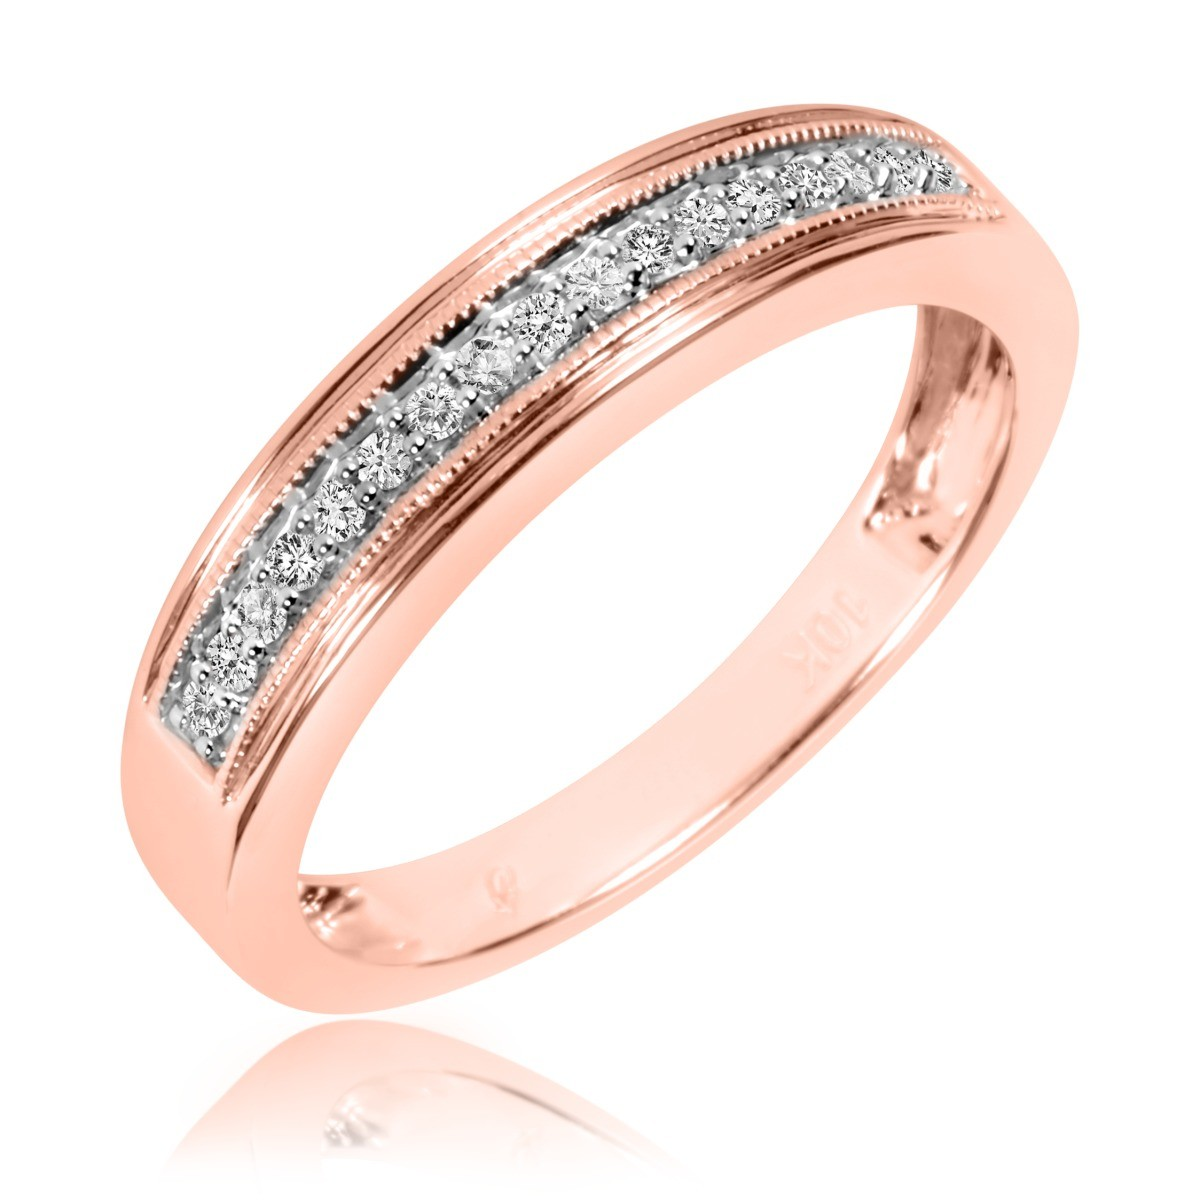 1/6 Carat T.W. Diamond Men's Wedding Band 14K Rose Gold